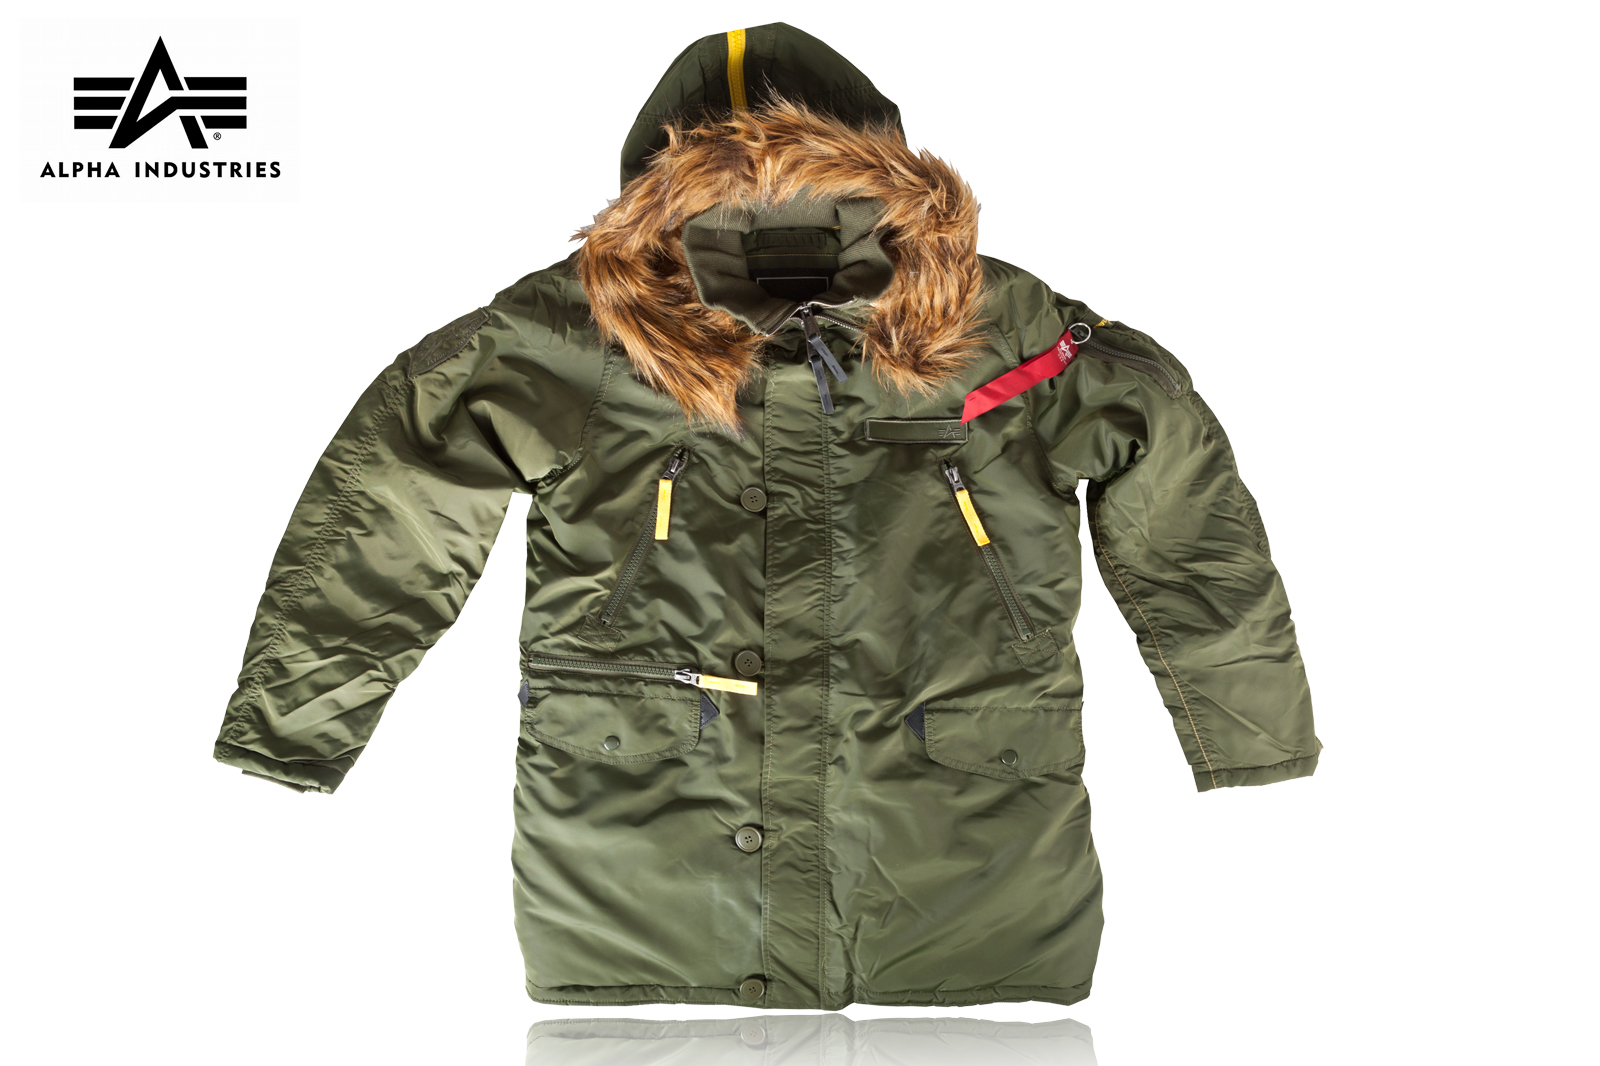 finest selection 19444 8b80f Kurtka Alpha Industries PPS N-3B Parka dark green r. XL ...